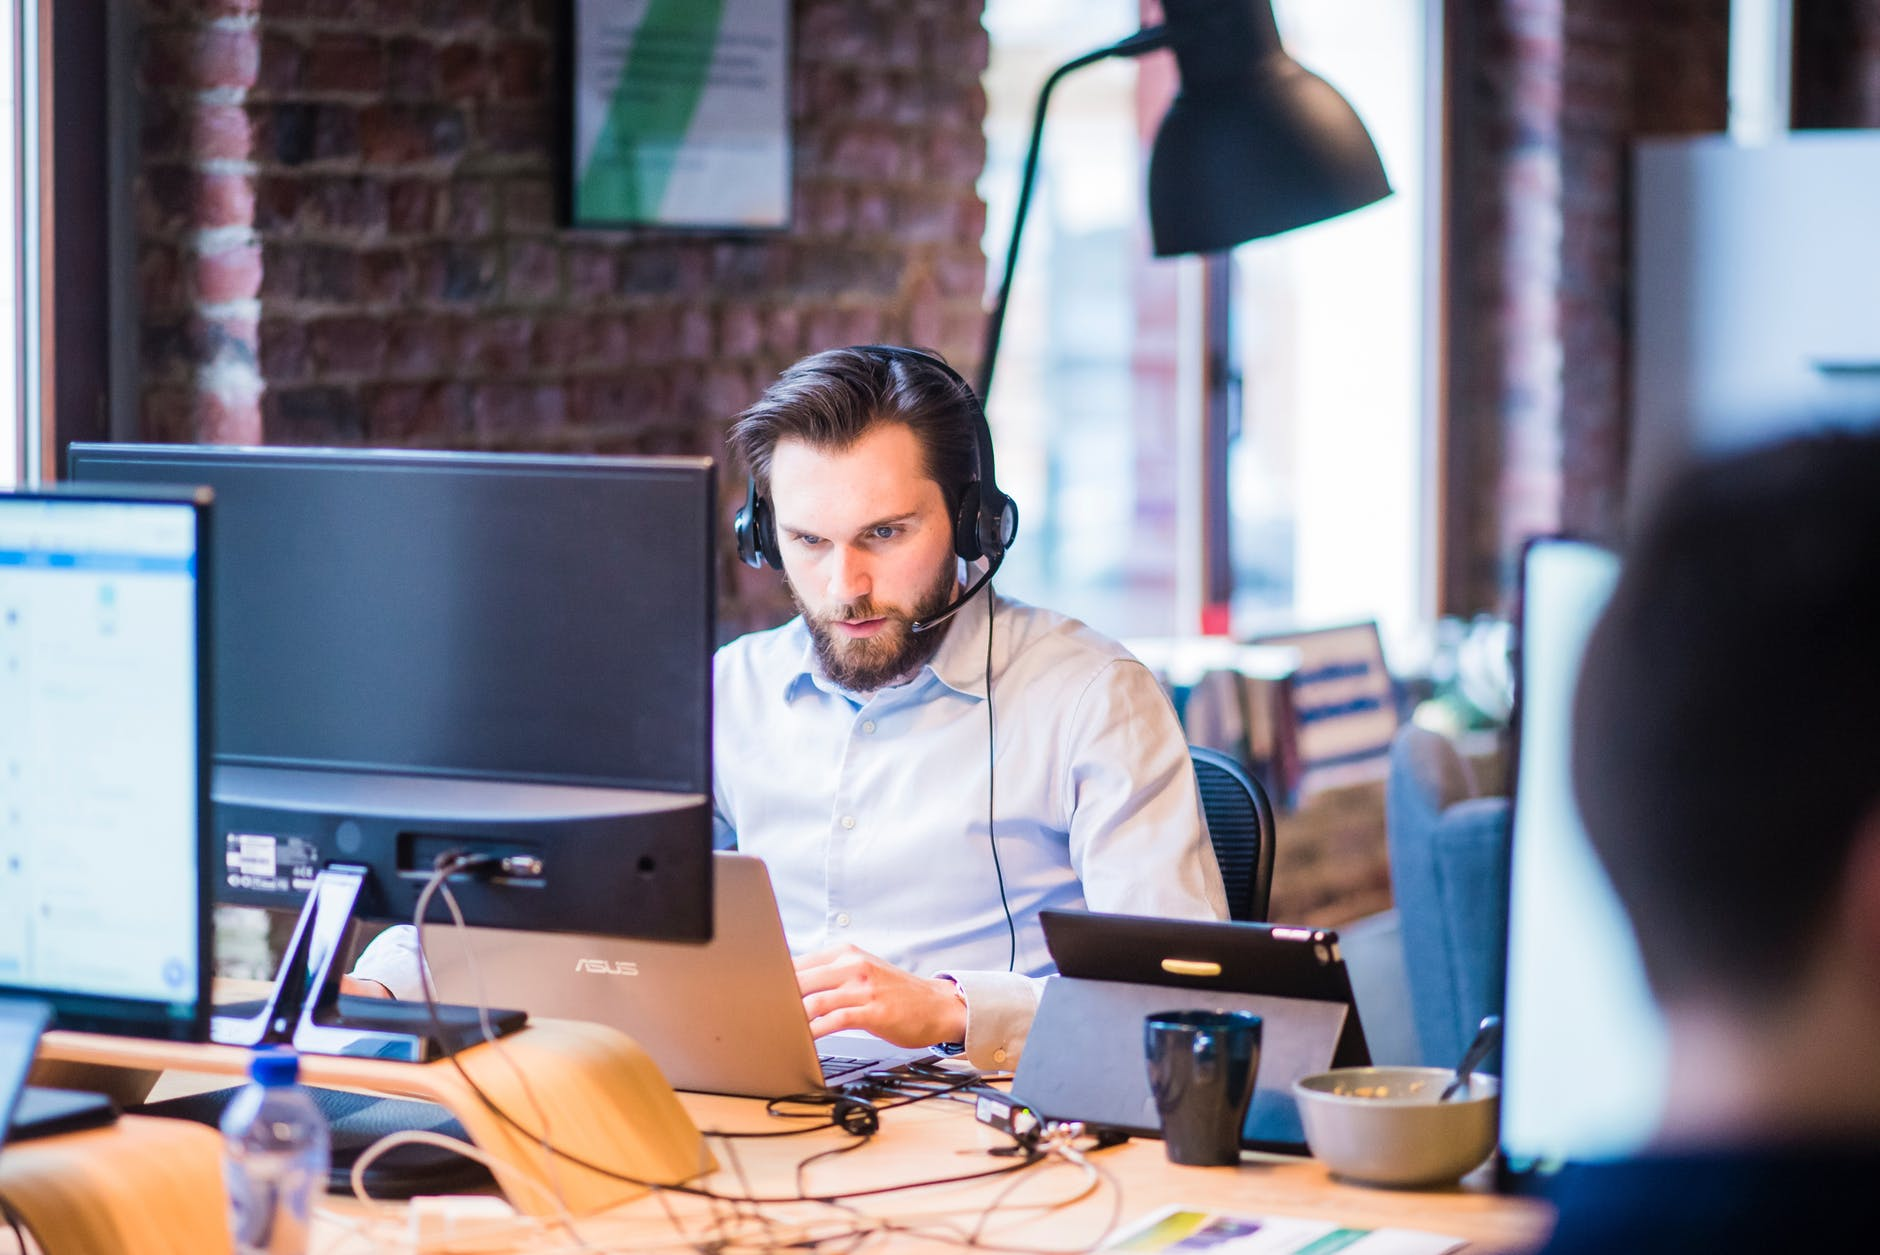 selective focus photo of man in official shirt sitting in office working on laptop